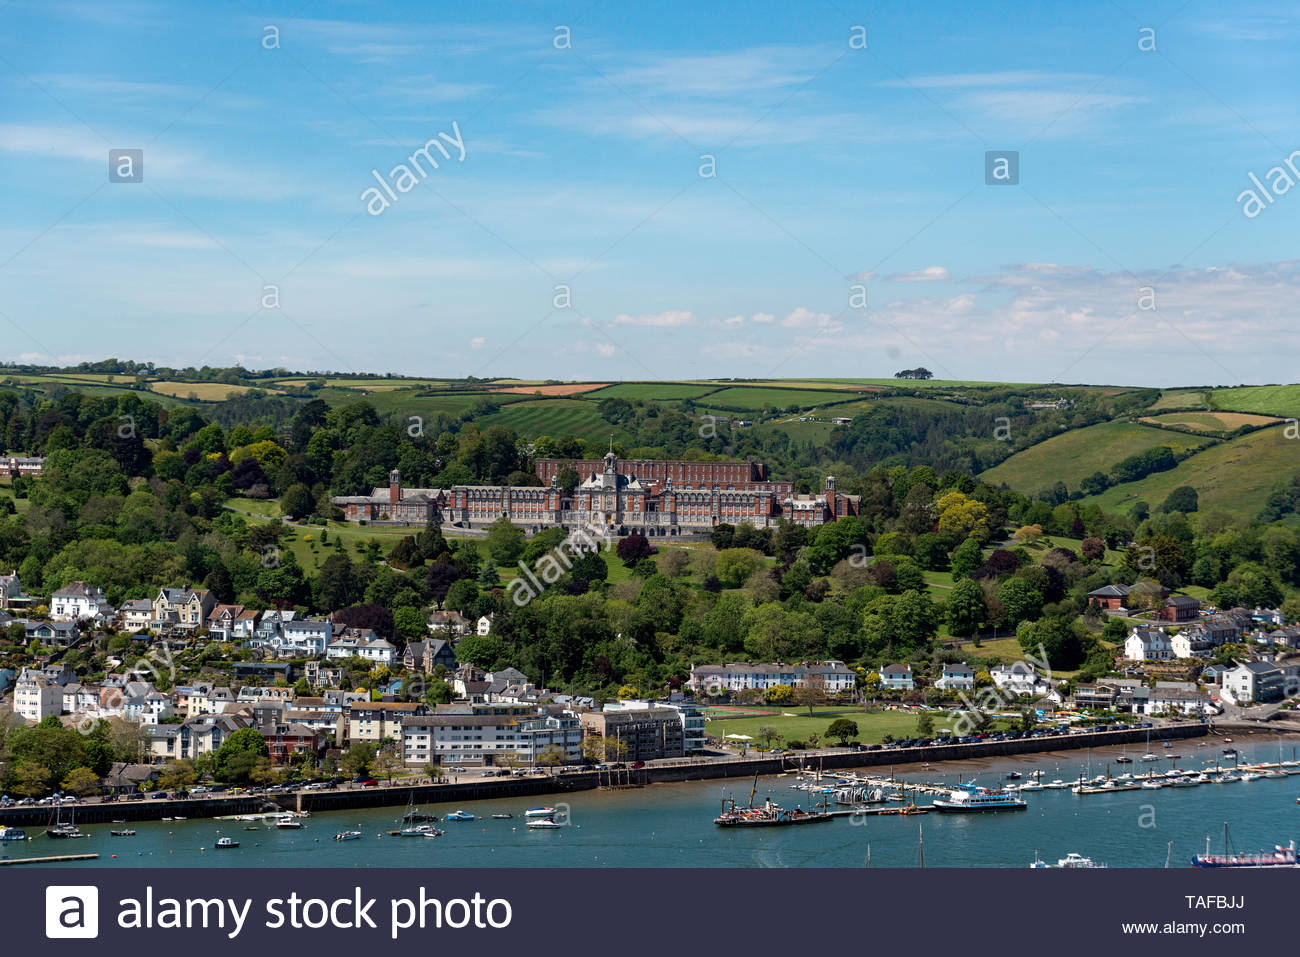 Looking across the River Dart towards Dartmouth and the Royal Naval College. Stock Photo